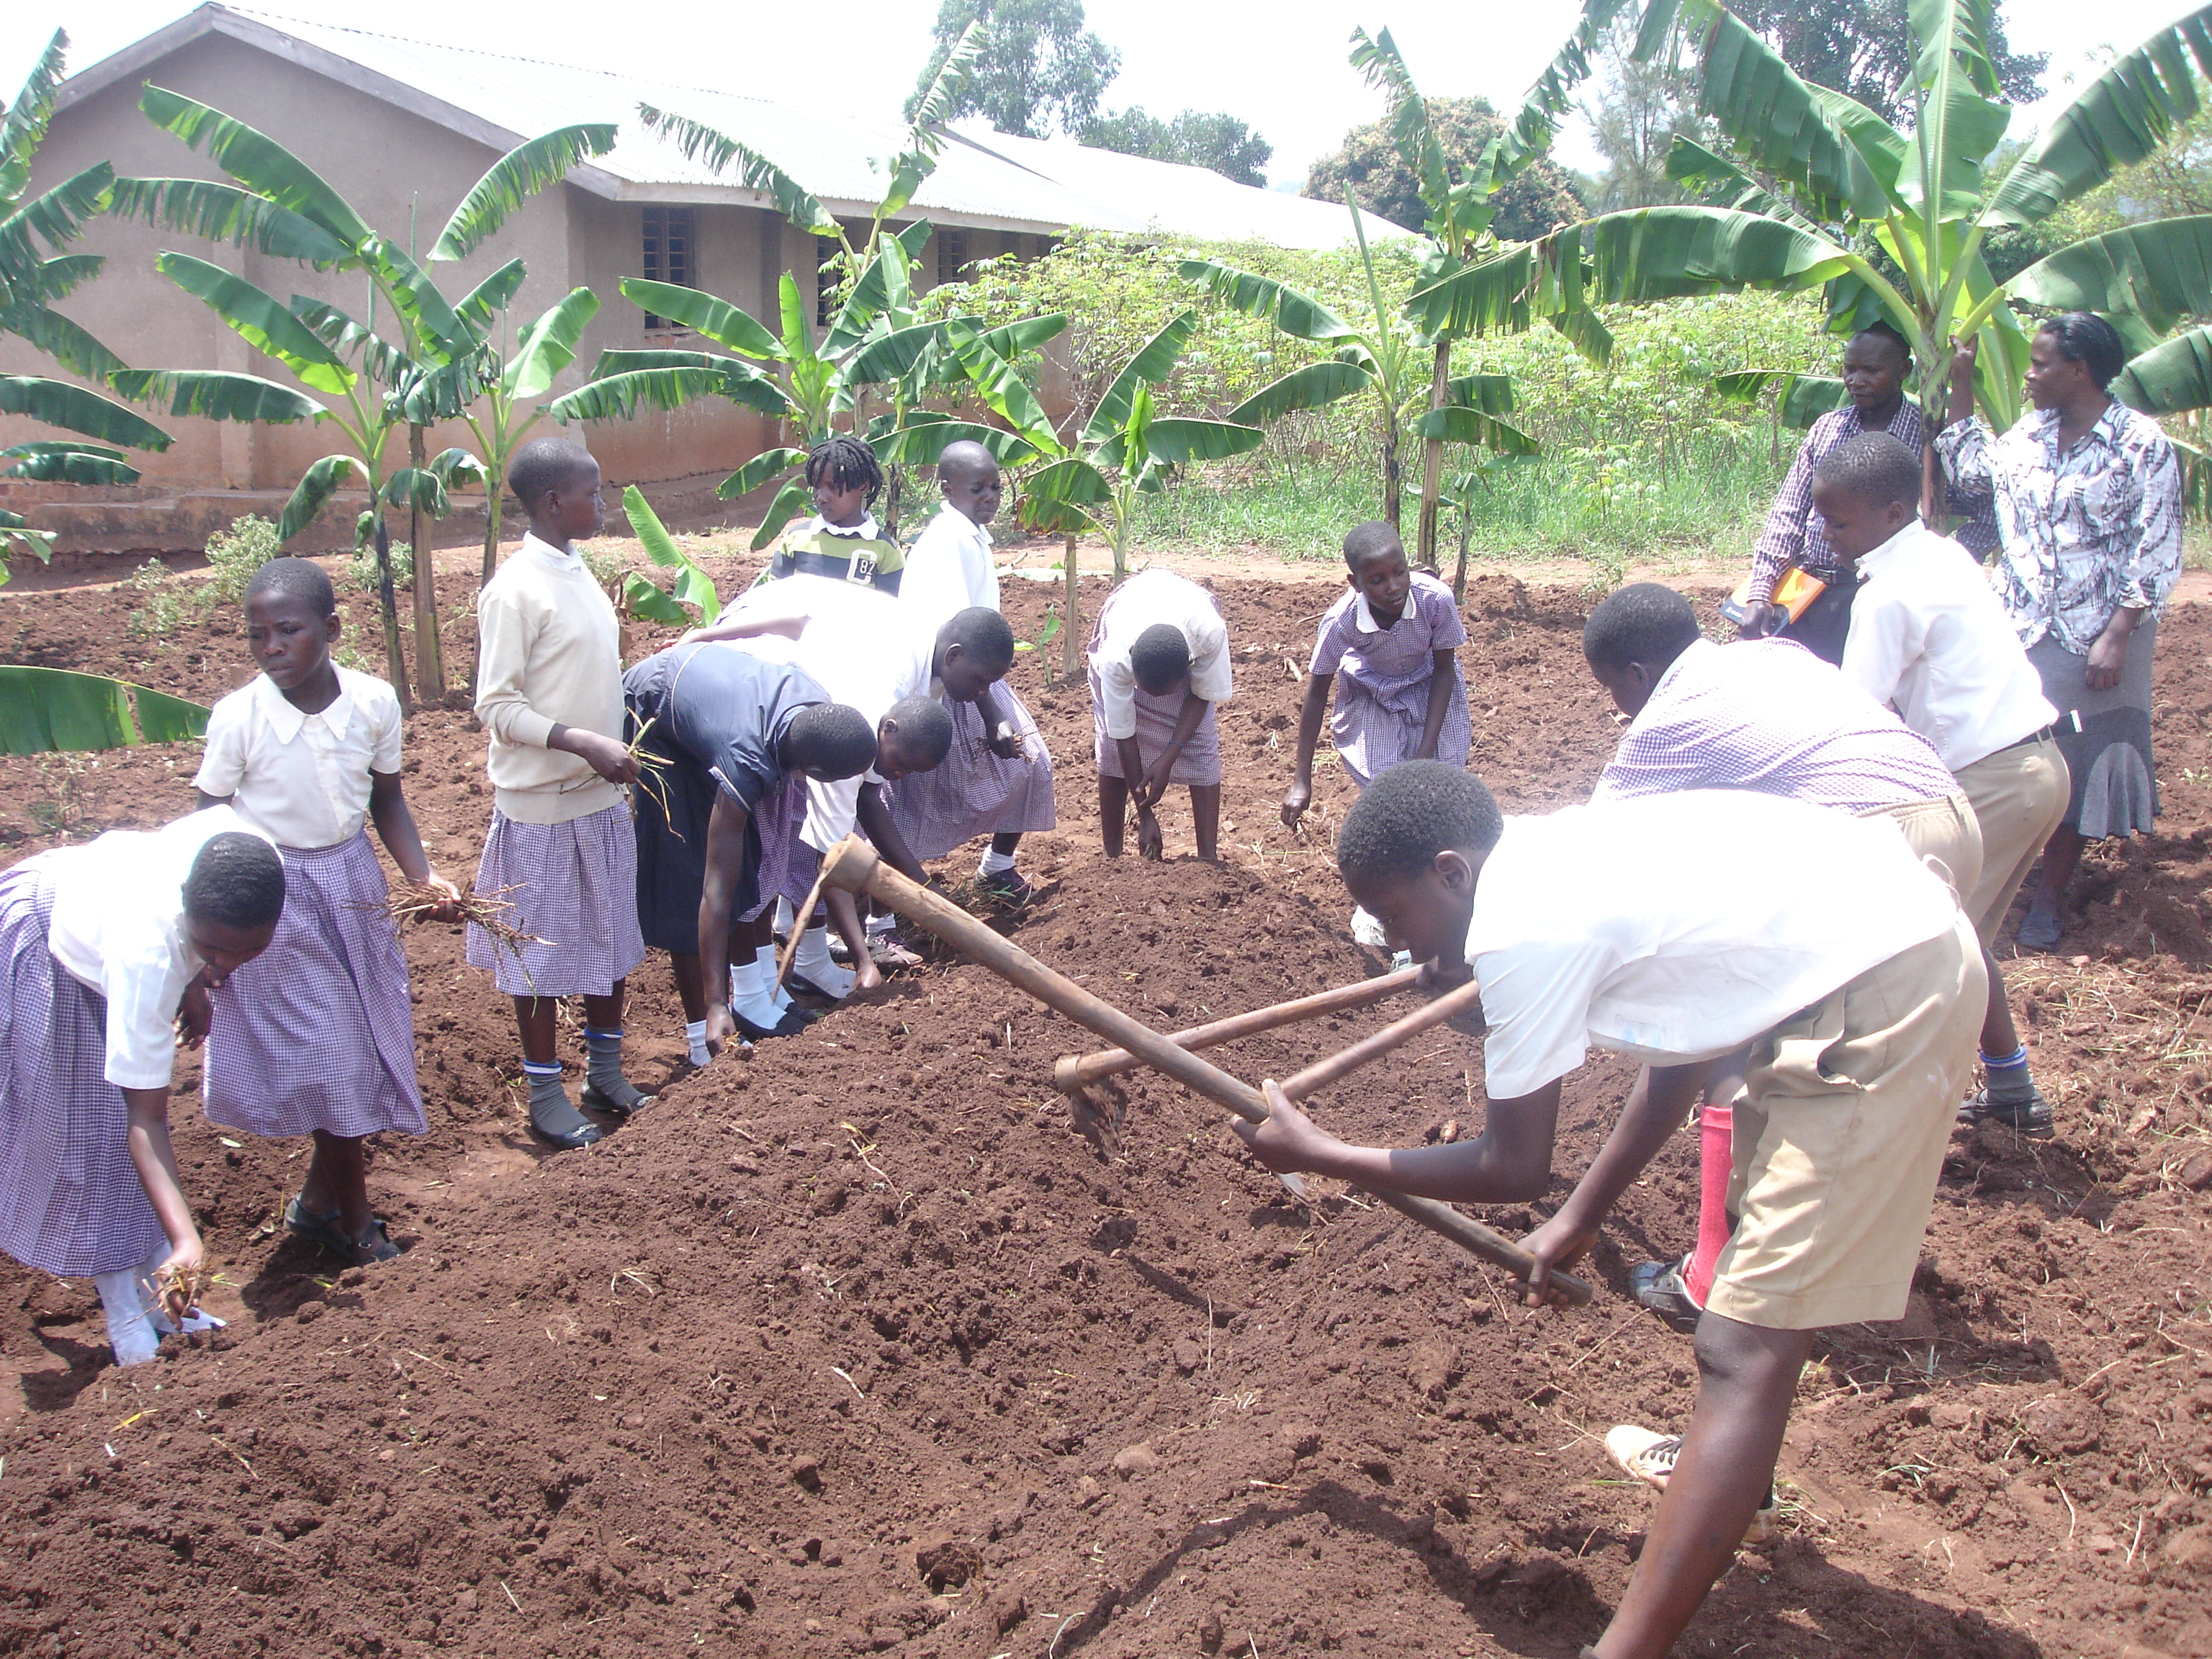 CESA-Uganda empowers school to produce enough food at school